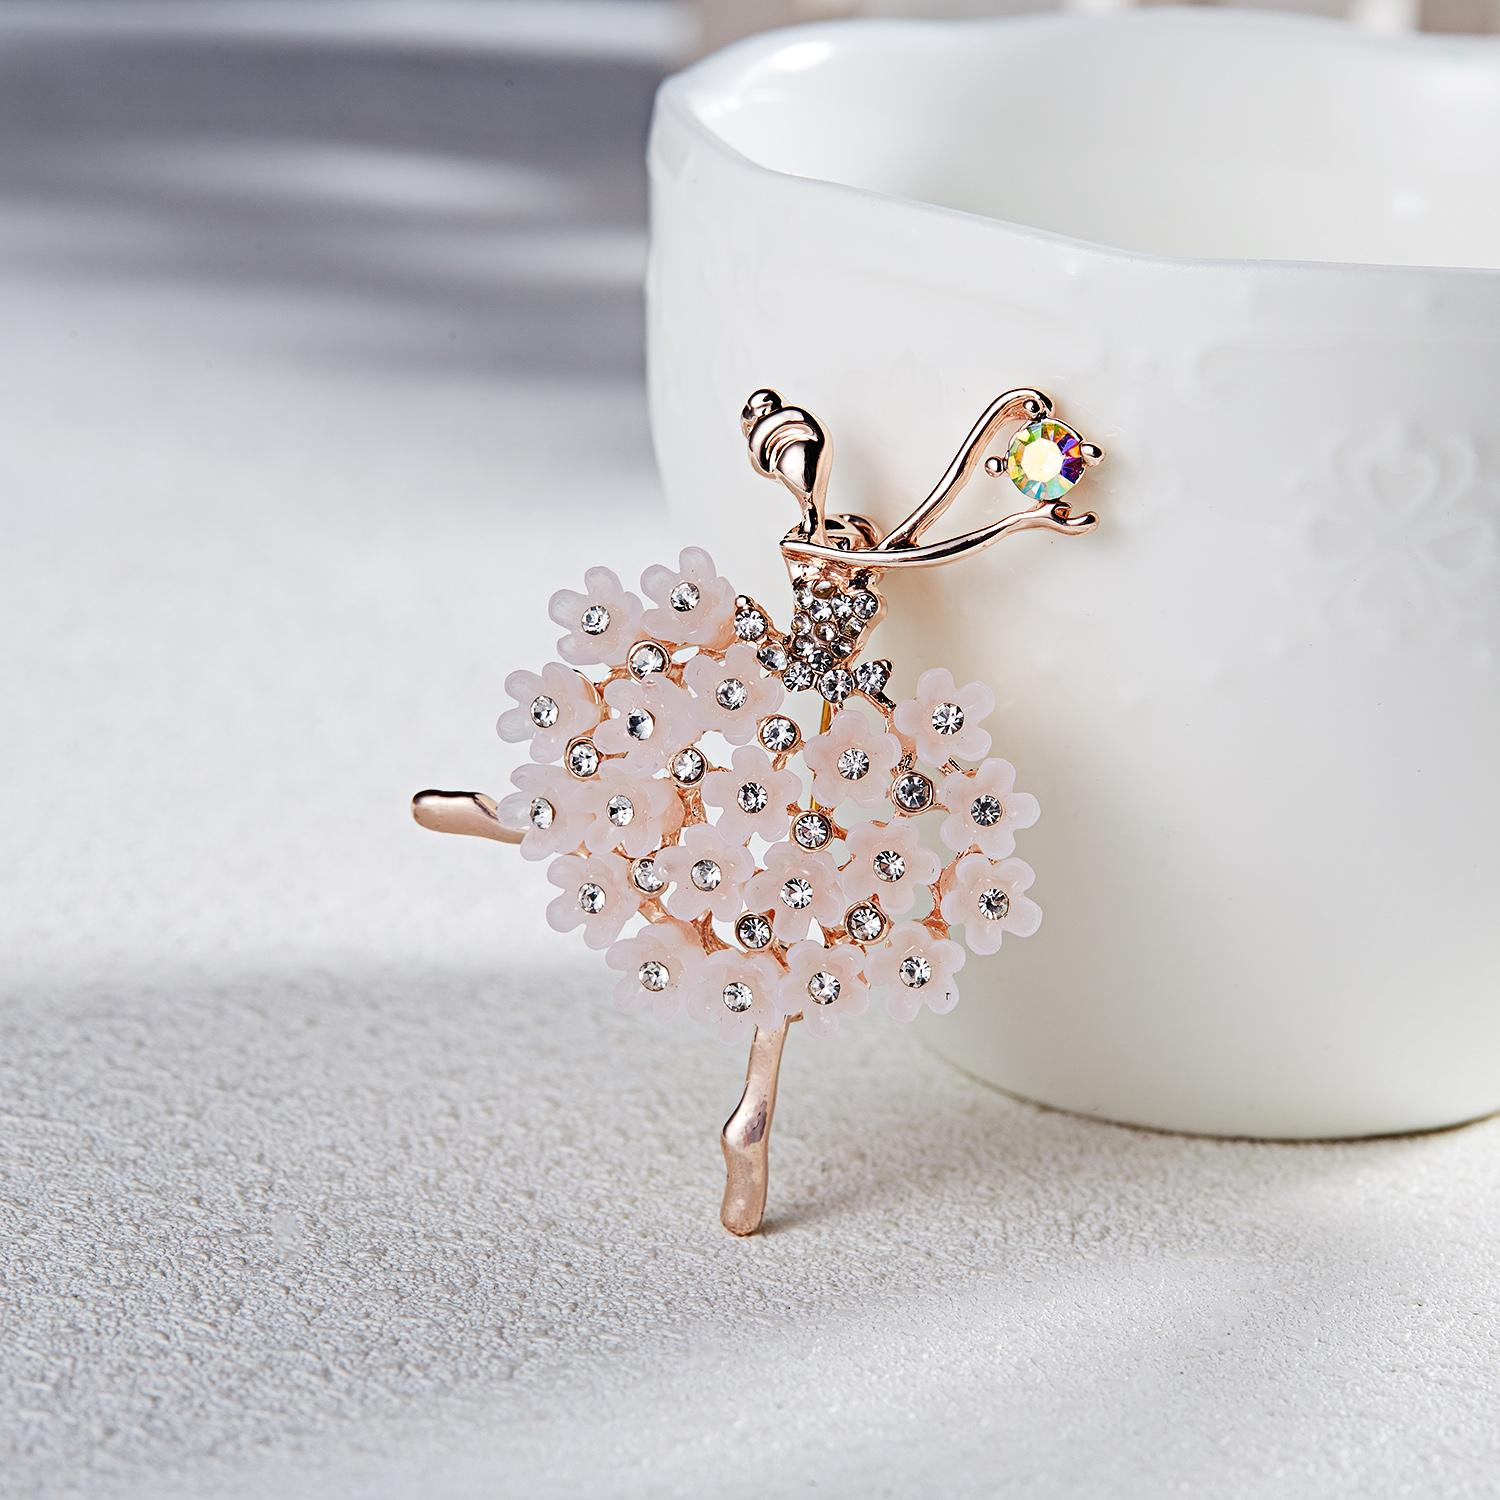 Wedding Swan Lake Factory Direct Sale Ballet Dancing Girl Shinning Crystal Glass Brooches for Woman in assorted designs